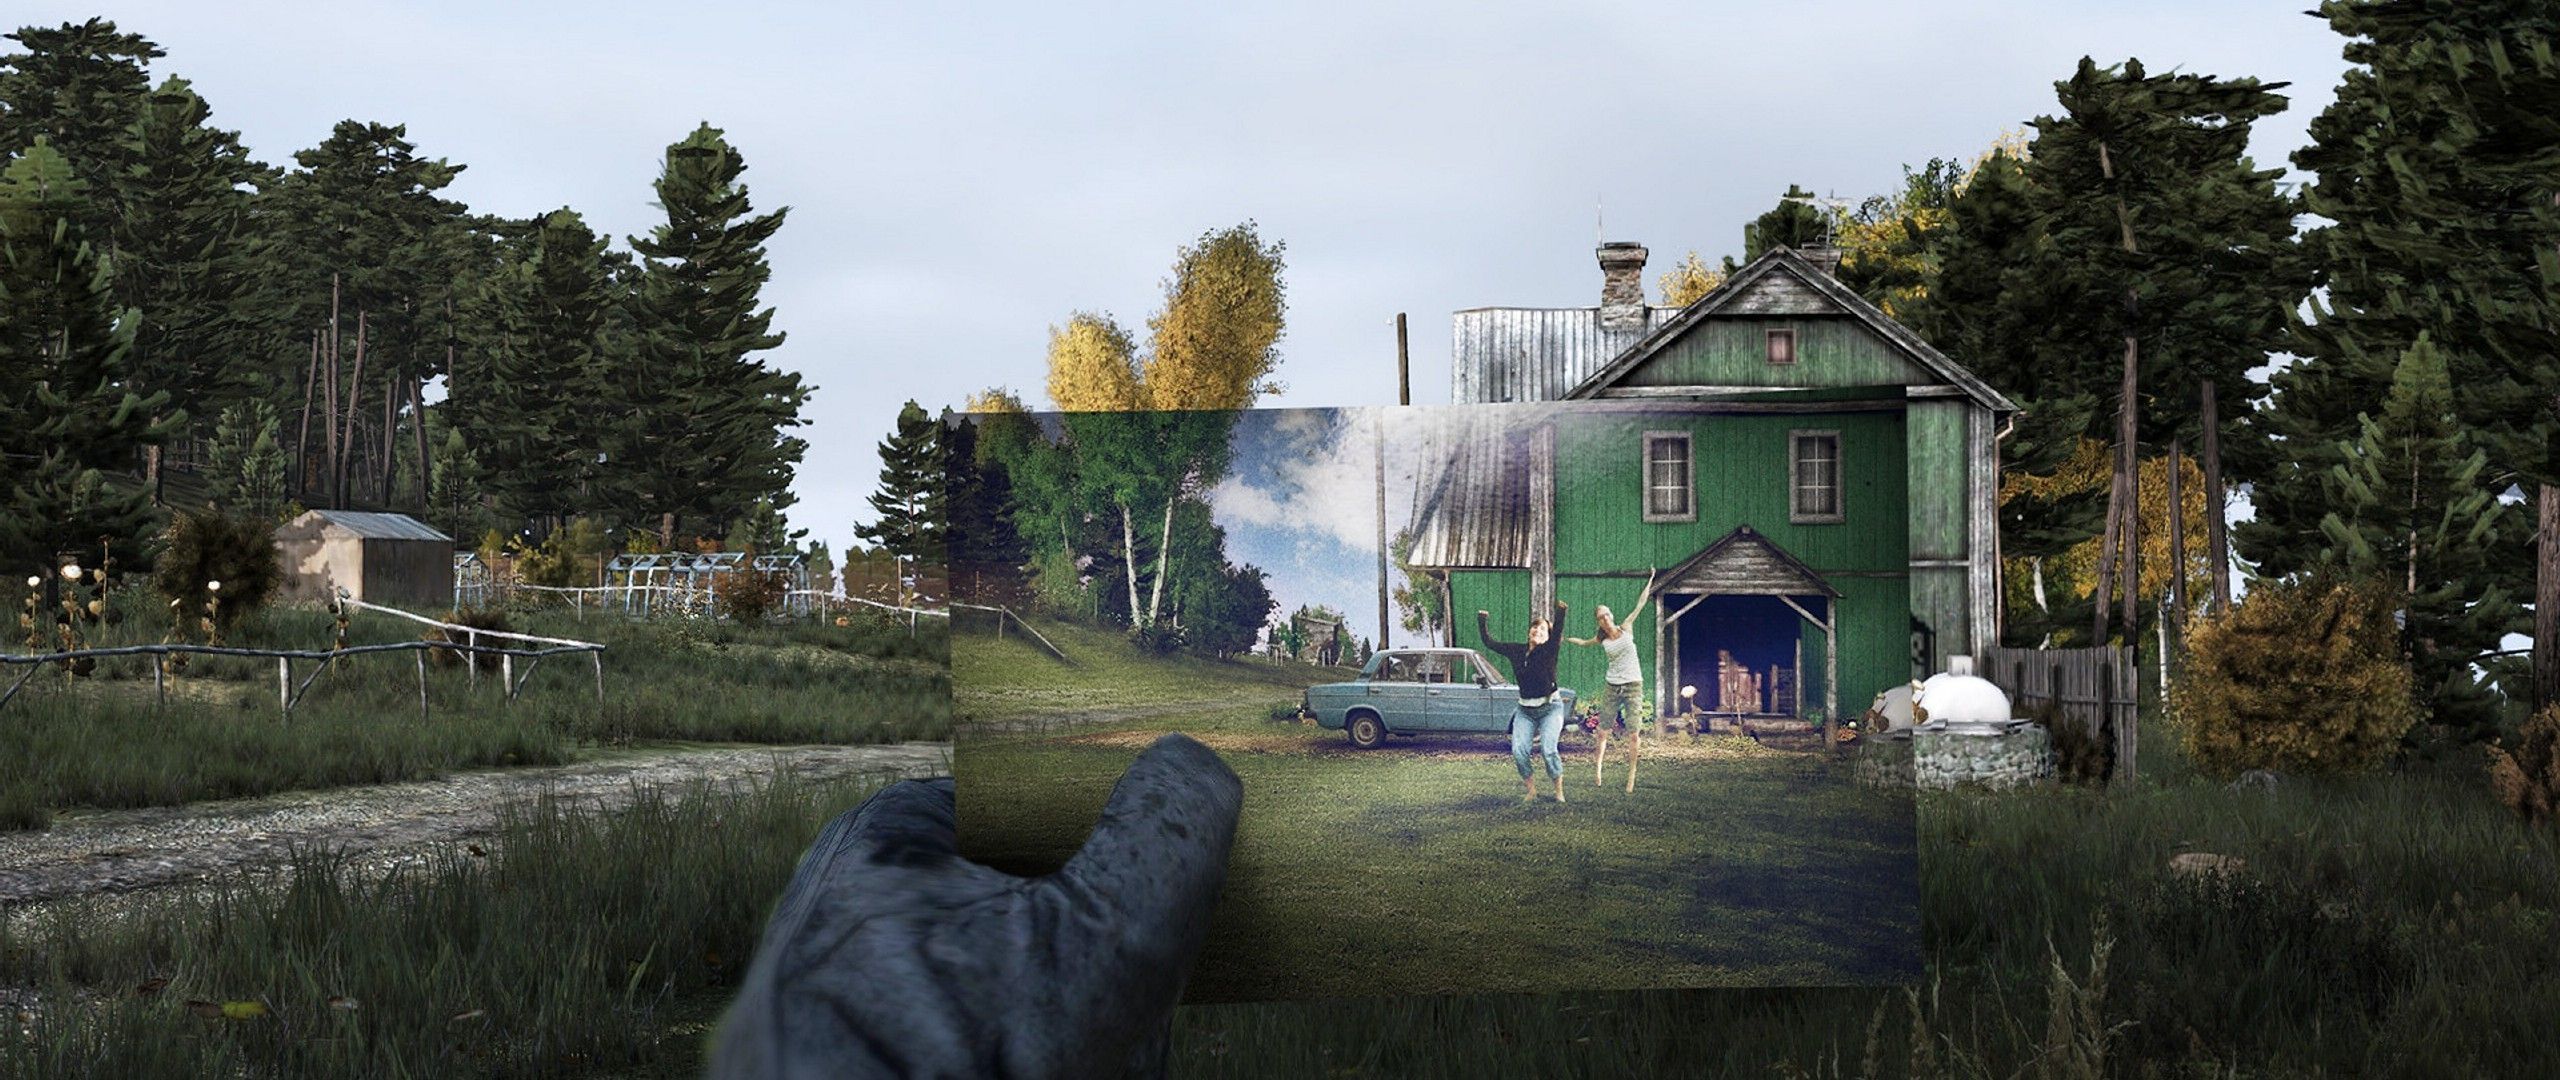 dayz new wallpapers free download